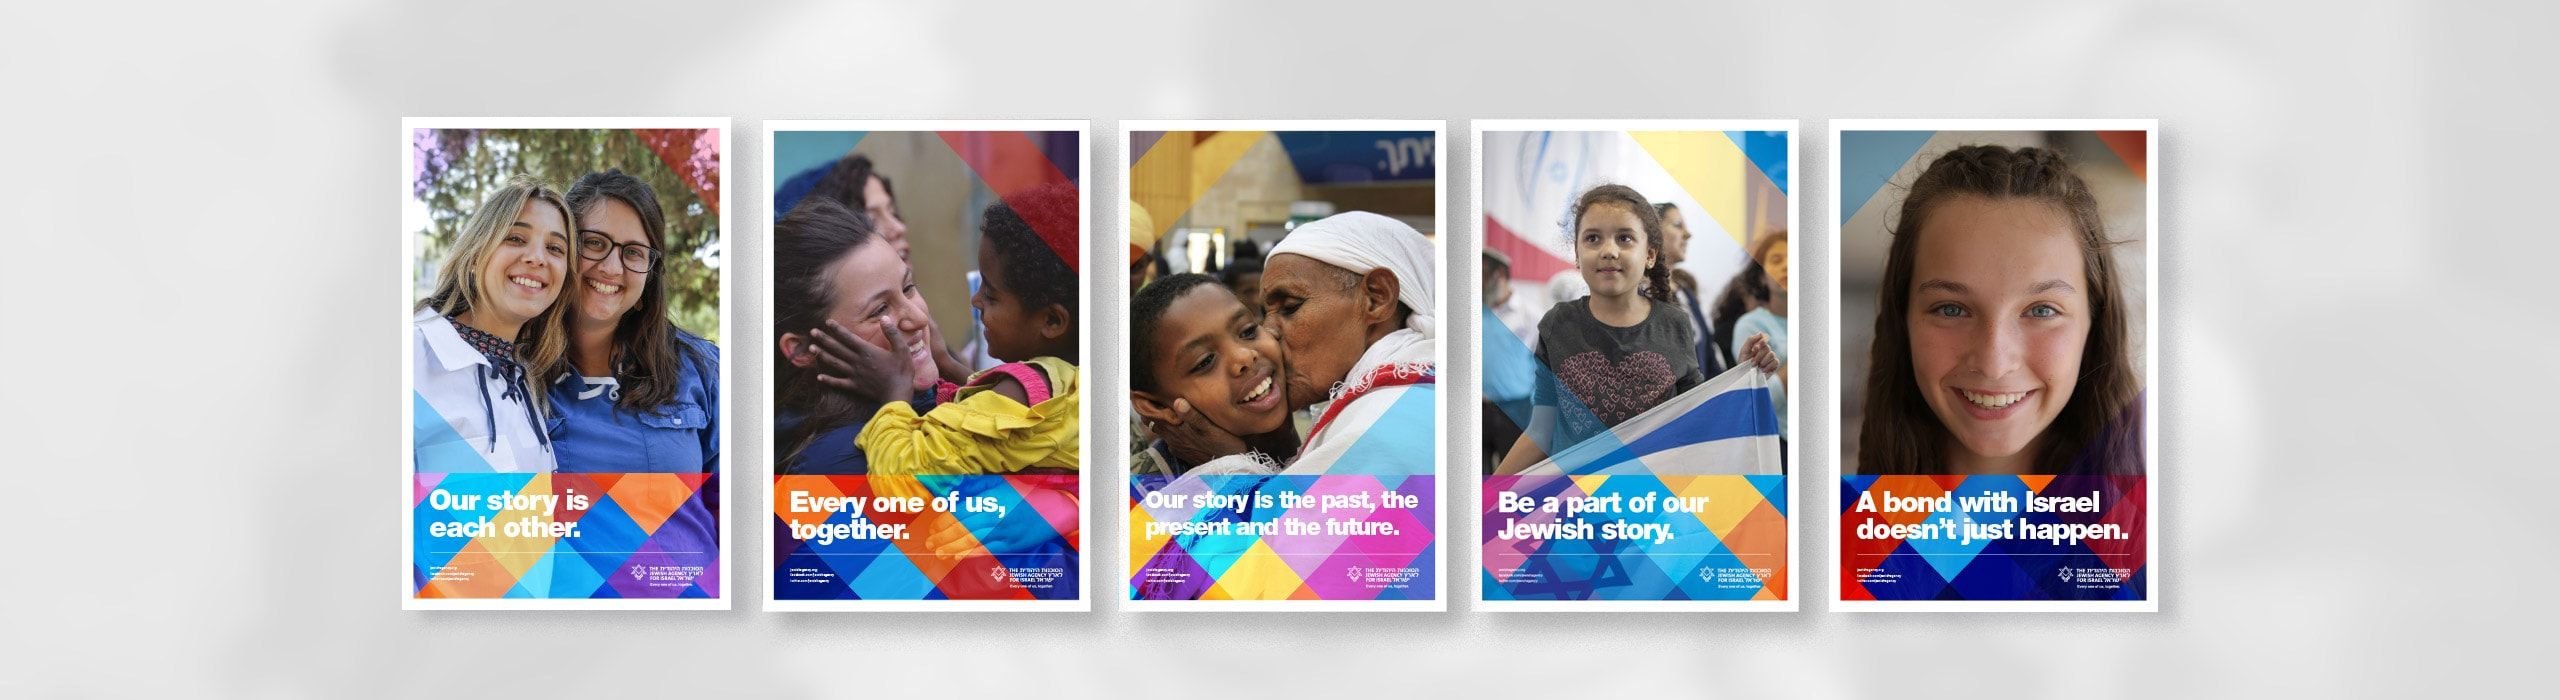 The Jewish Agency for Israel - 7 - Natie Branding Agency